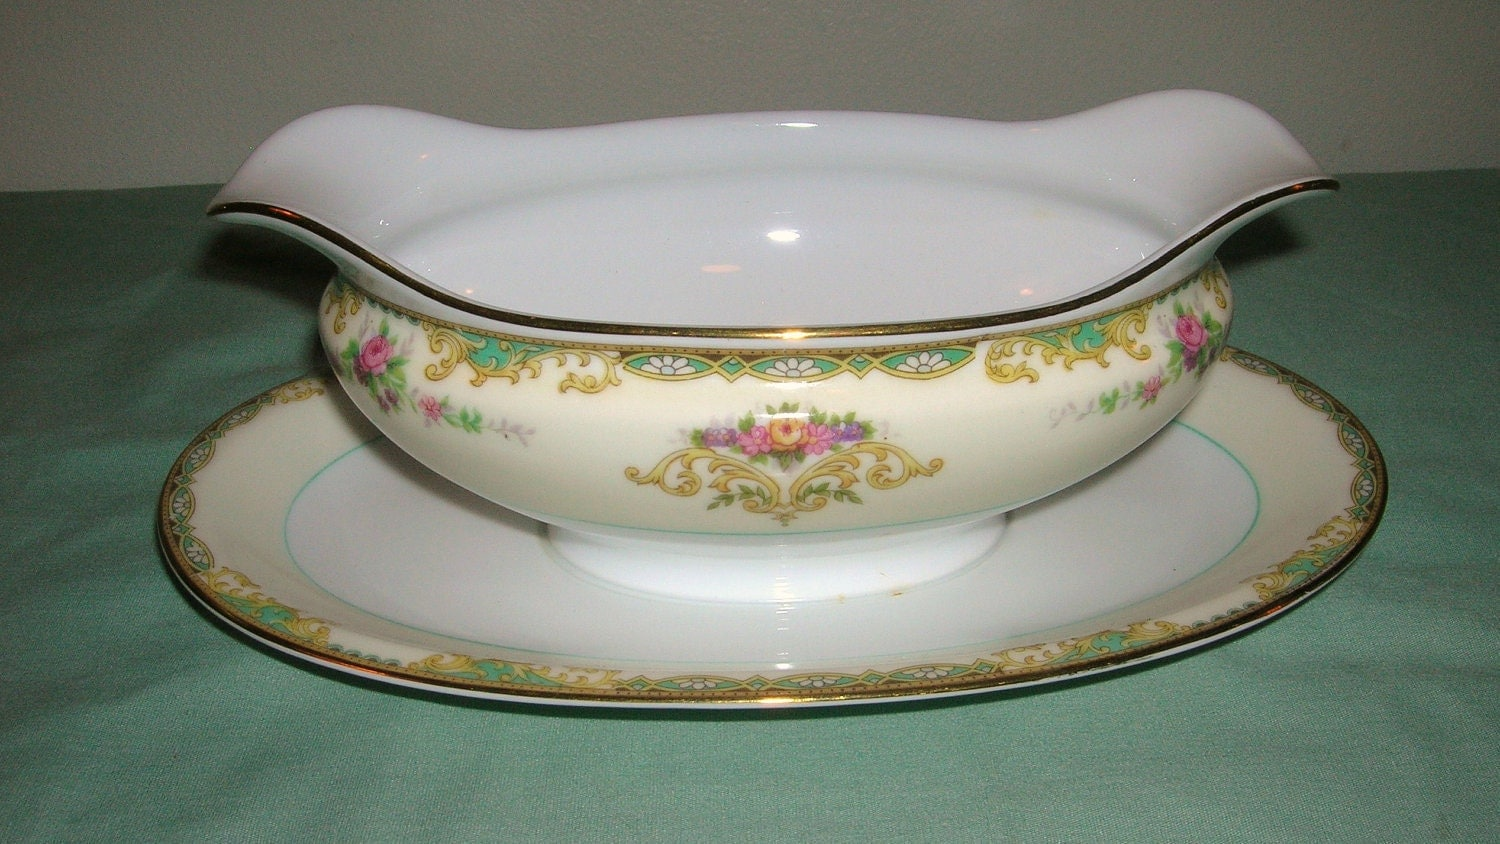 Old China Patterns Impressive With Vintage Noritake China Patterns Photo